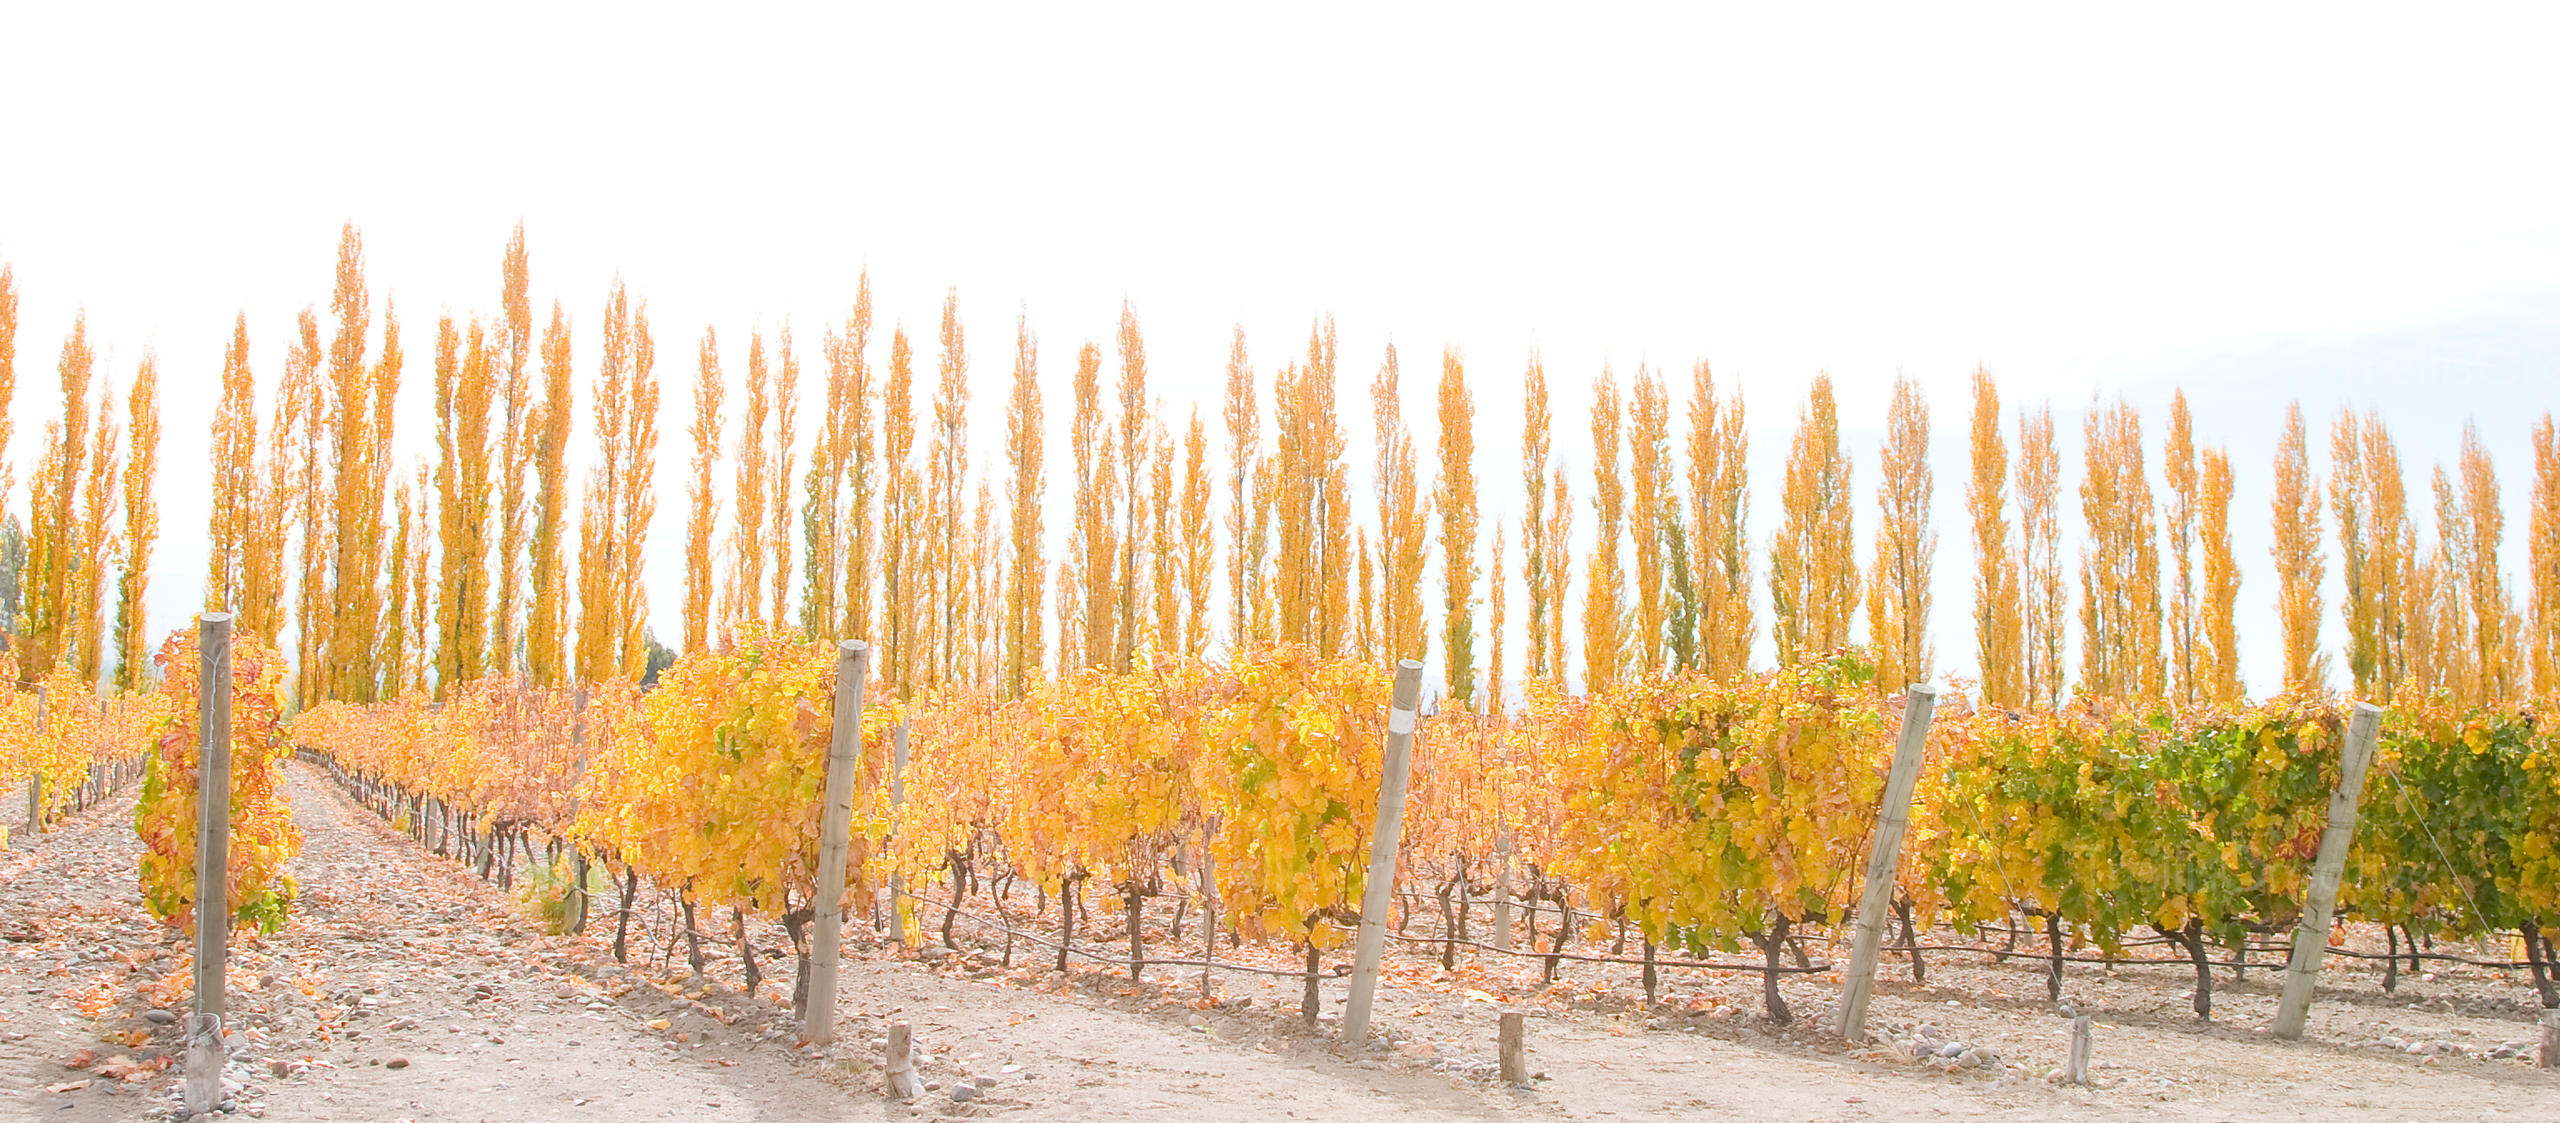 Rows of yellow leaf trees along side an autumn vineyard in Mendoza